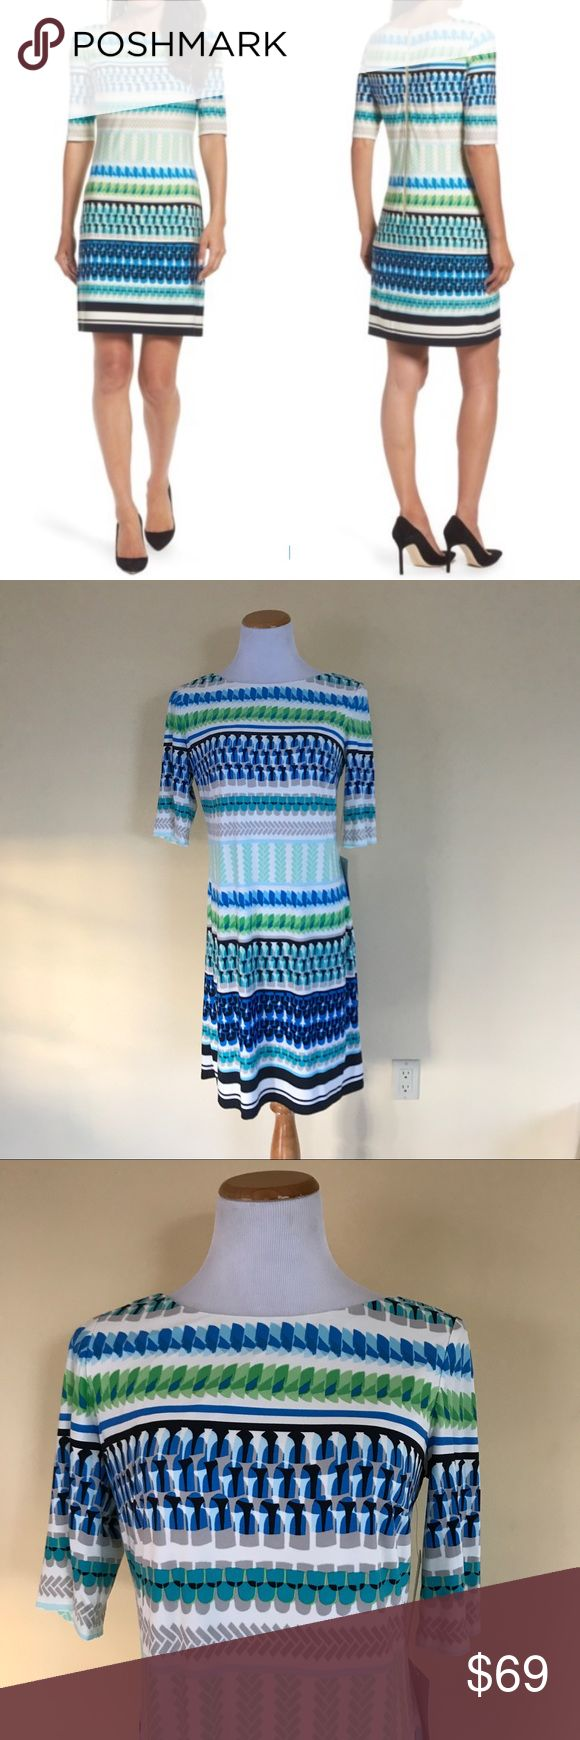 NWT Eliza J Striped Print Shift Dress NWT New with tag Eliza J Striped Print Shift Dress. Perfect as a career / work / office dress, for a night out, for brunch, etc. Super versatile! Beautiful vibrant colors. Size 12. Check out my closet for bundles! Eliza J Dresses